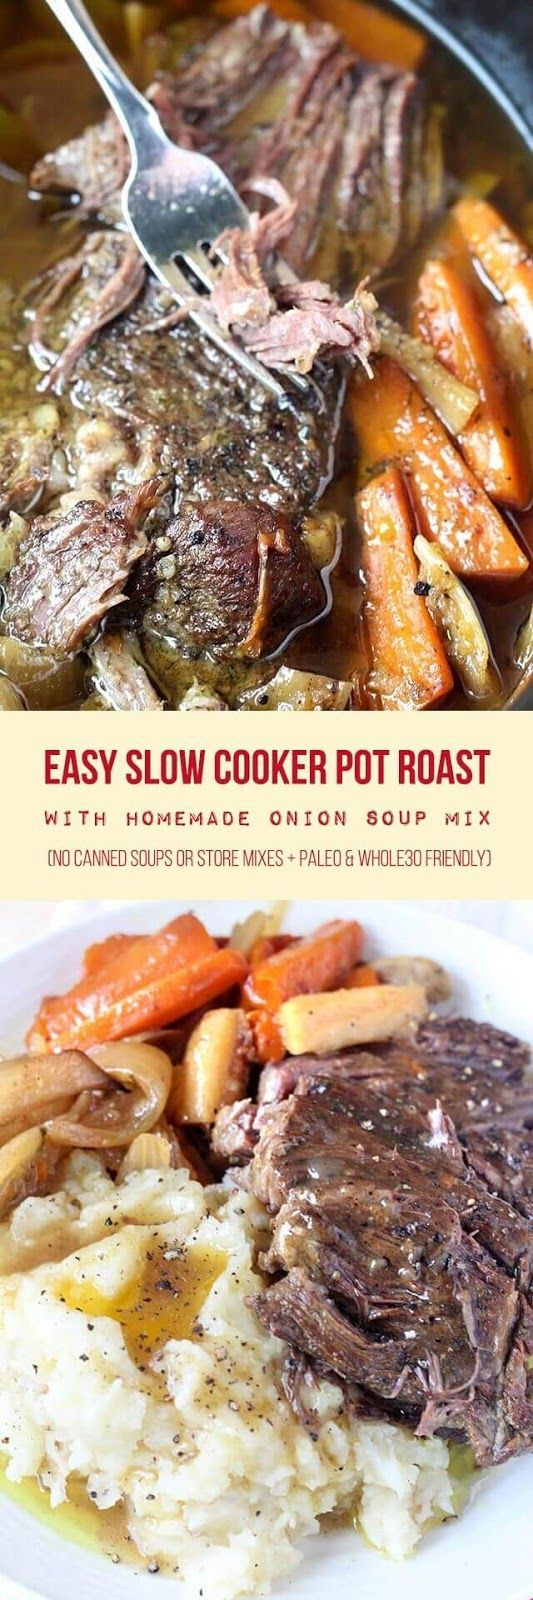 Fall-apart tender pot roast cooked in the crock-pot with root vegetables and homemade onion soup mix. This super easy recipe takes about 20 minutes to prep and can be made in as little as 4-5 hours on the high setting. Serve with your favorite mashed potatoes for the best comforting meal. {Paleo & Whole30 Friendly)